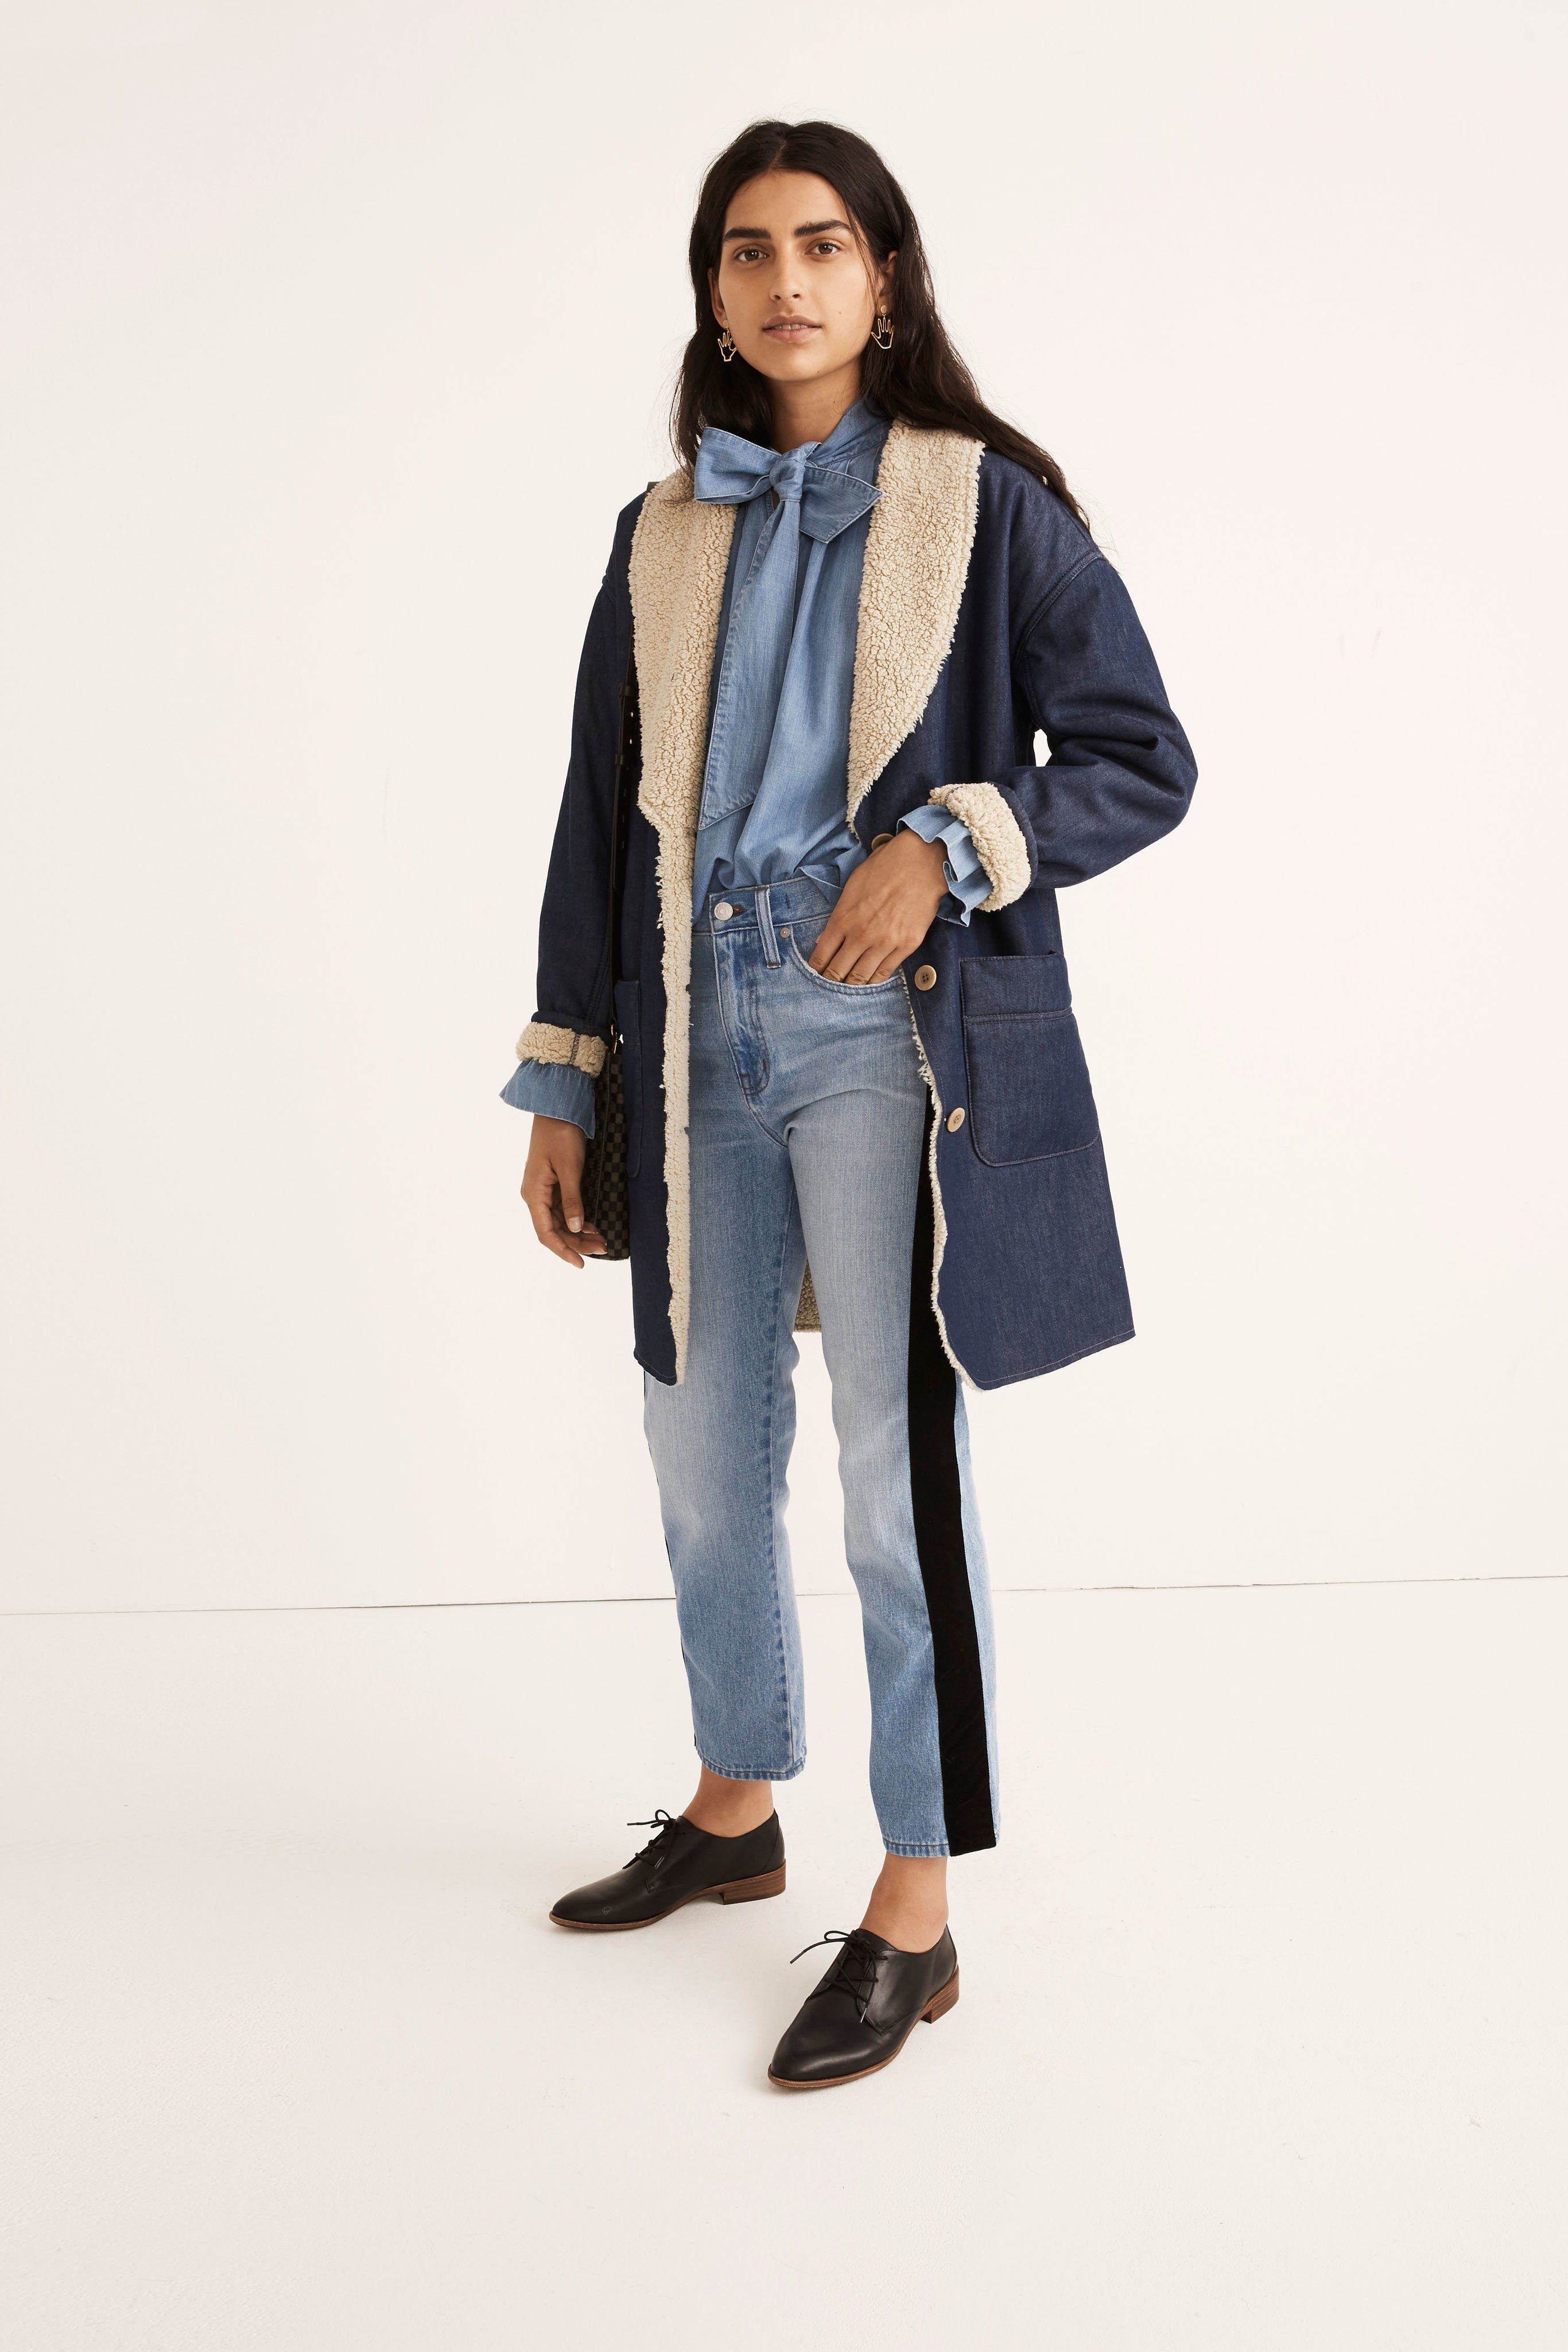 189e0dfed5 Madewell Fall 2018 Ready-to-Wear Collection - Vogue